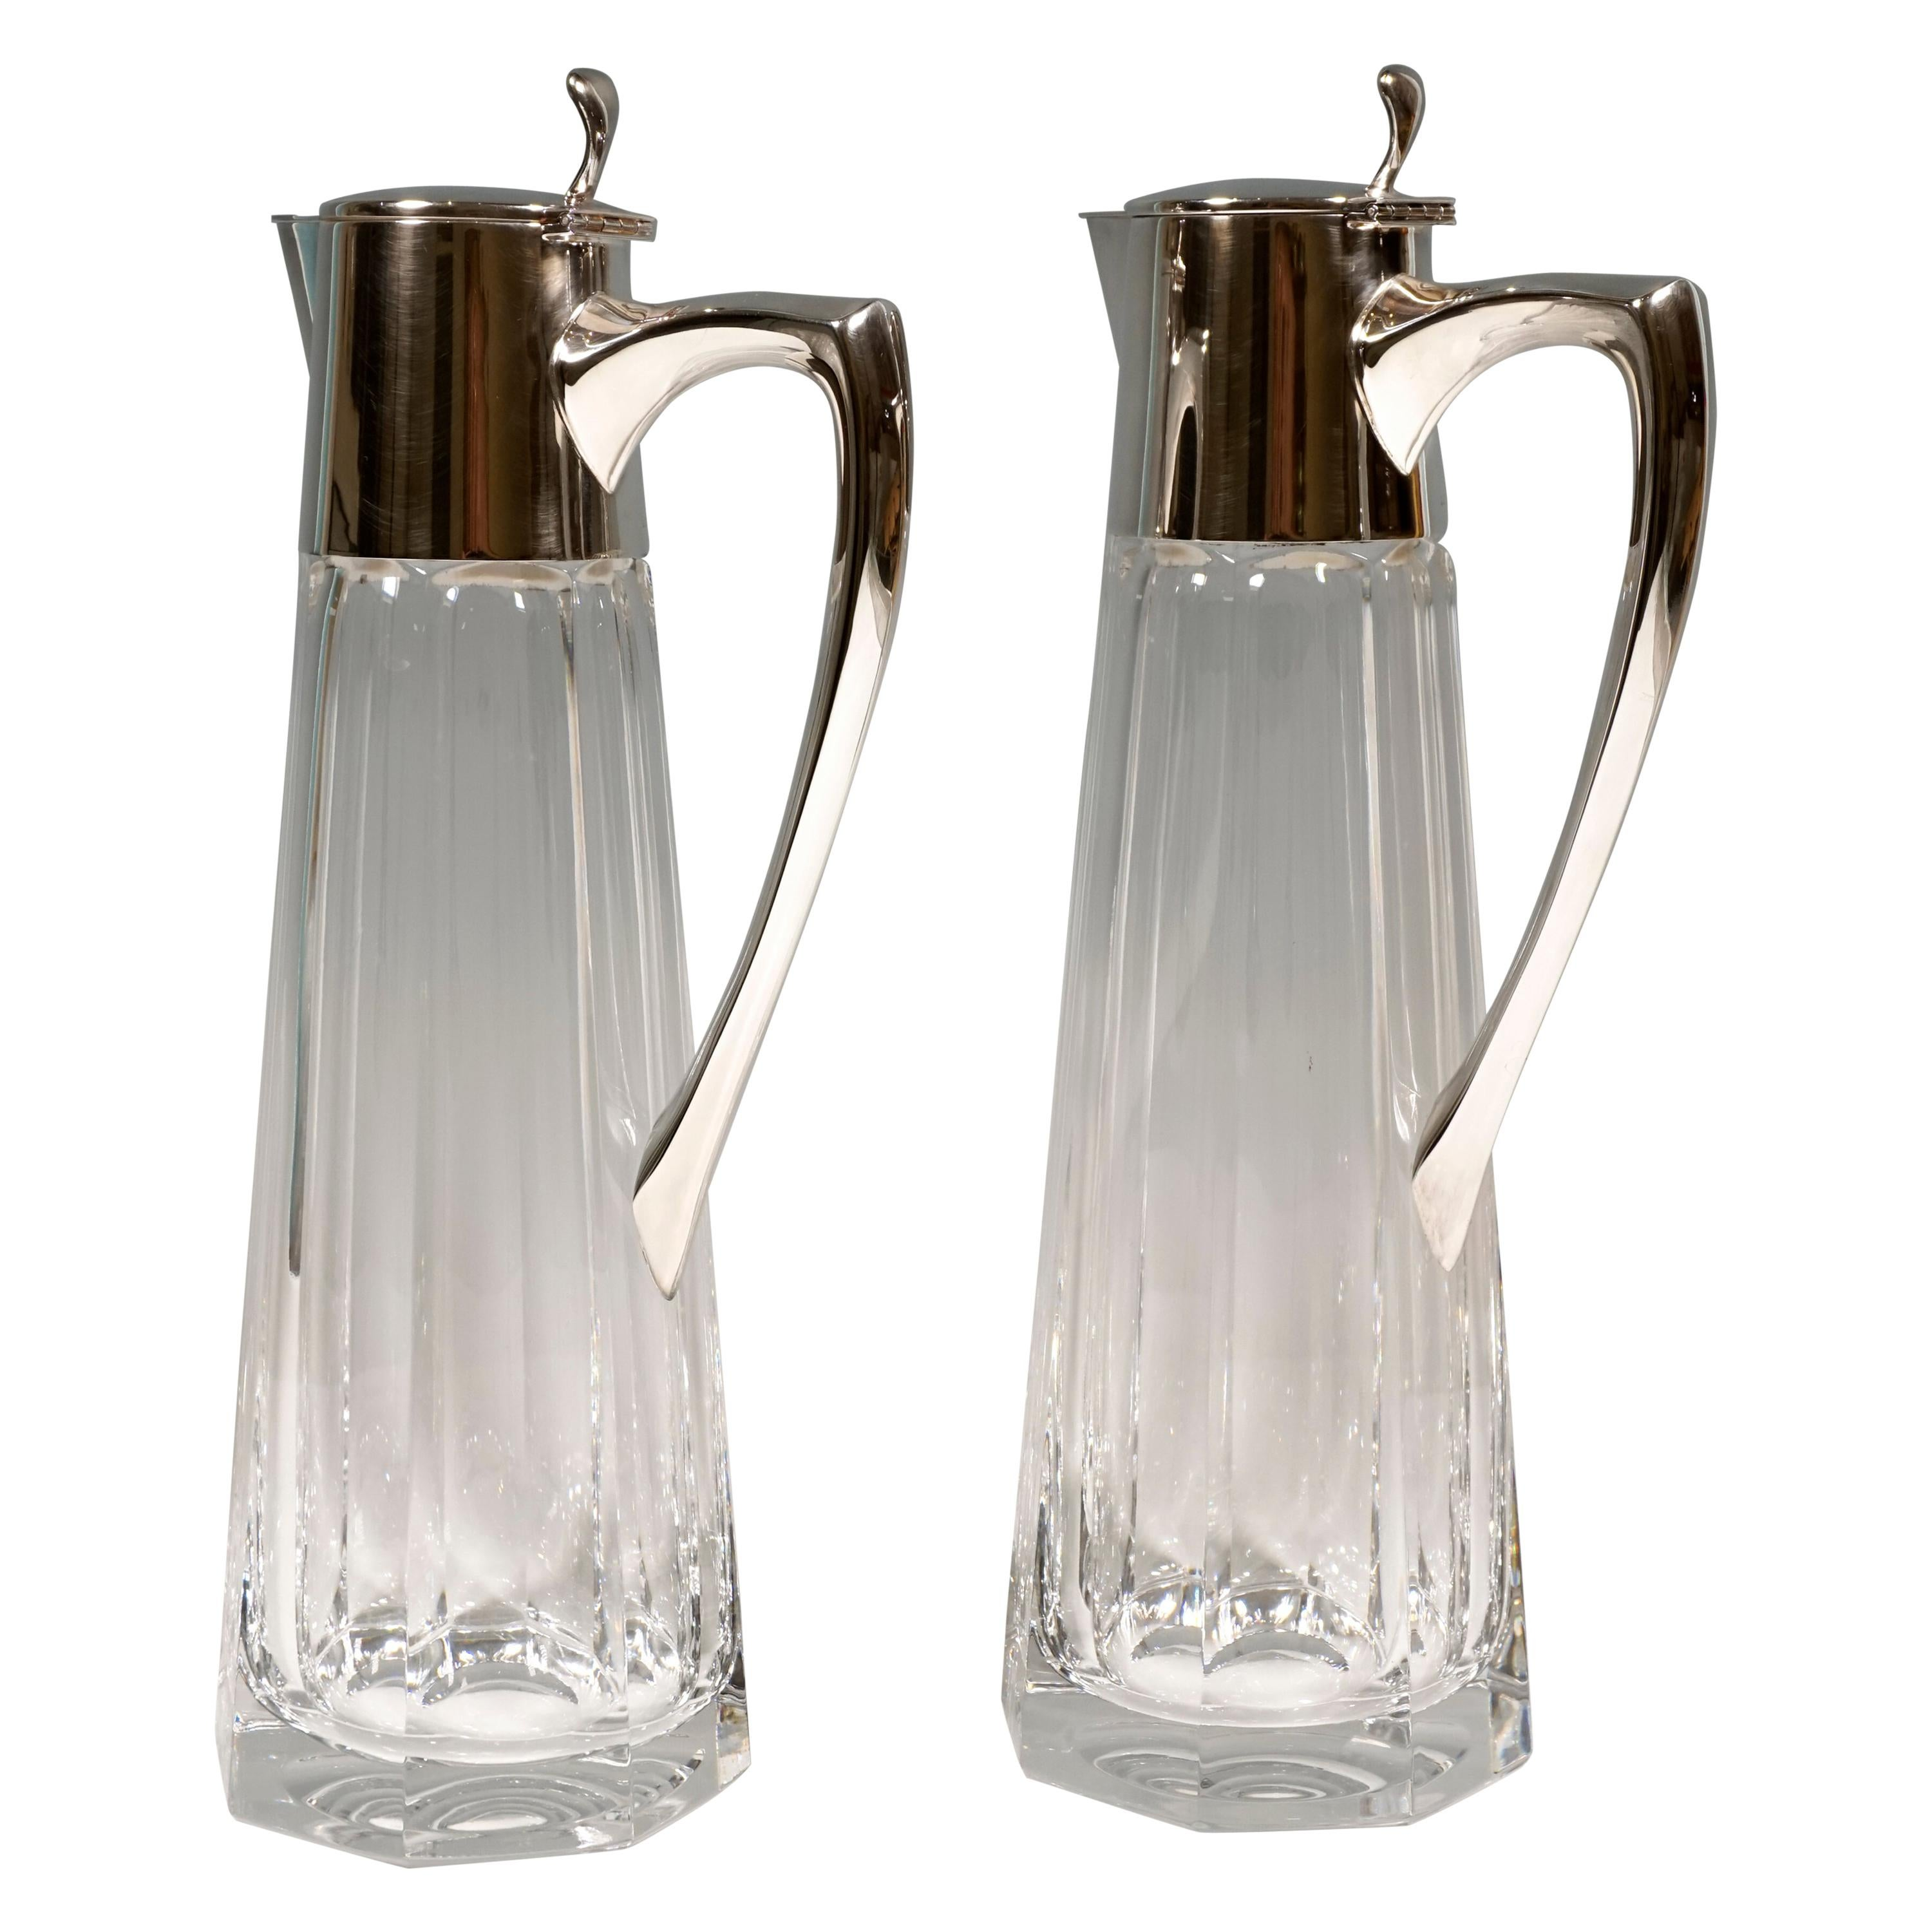 Pair of Glass Carafes with Silver Mounts, Gebrüder Kühn, Germany, Early 20th